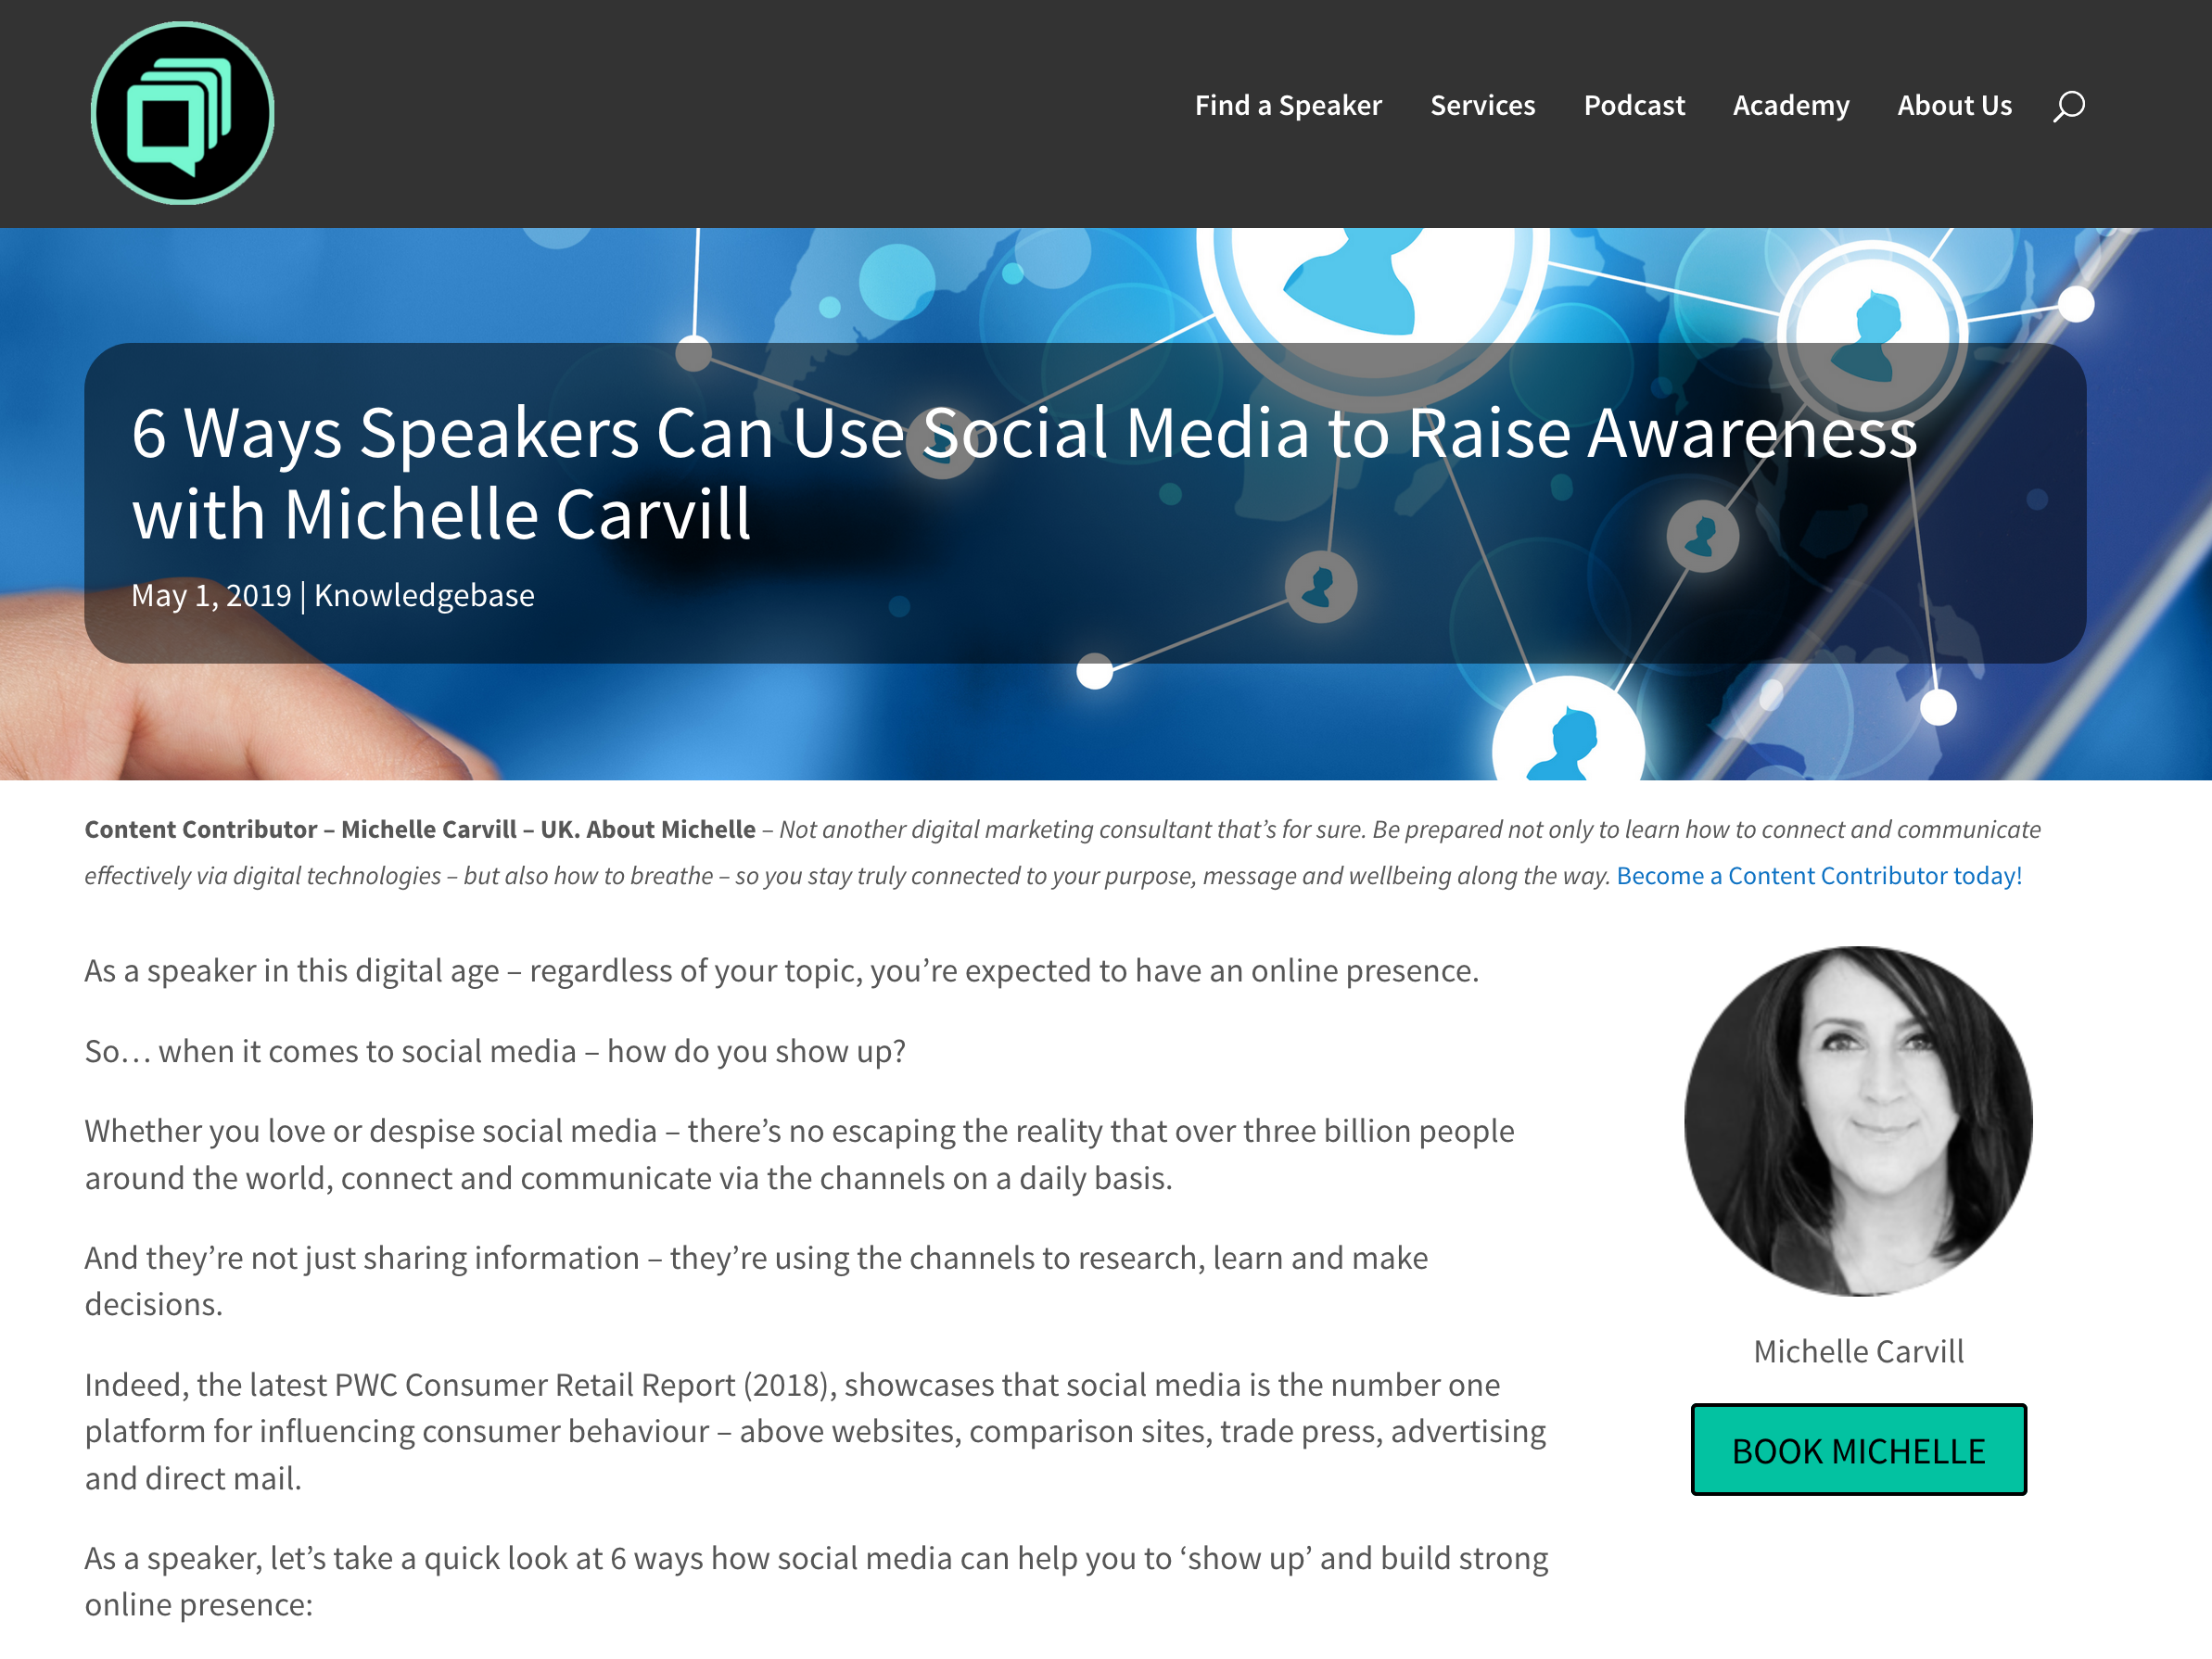 6 Ways Speakers Can Use Social Media to Raise Awareness with Michelle Carvill.png